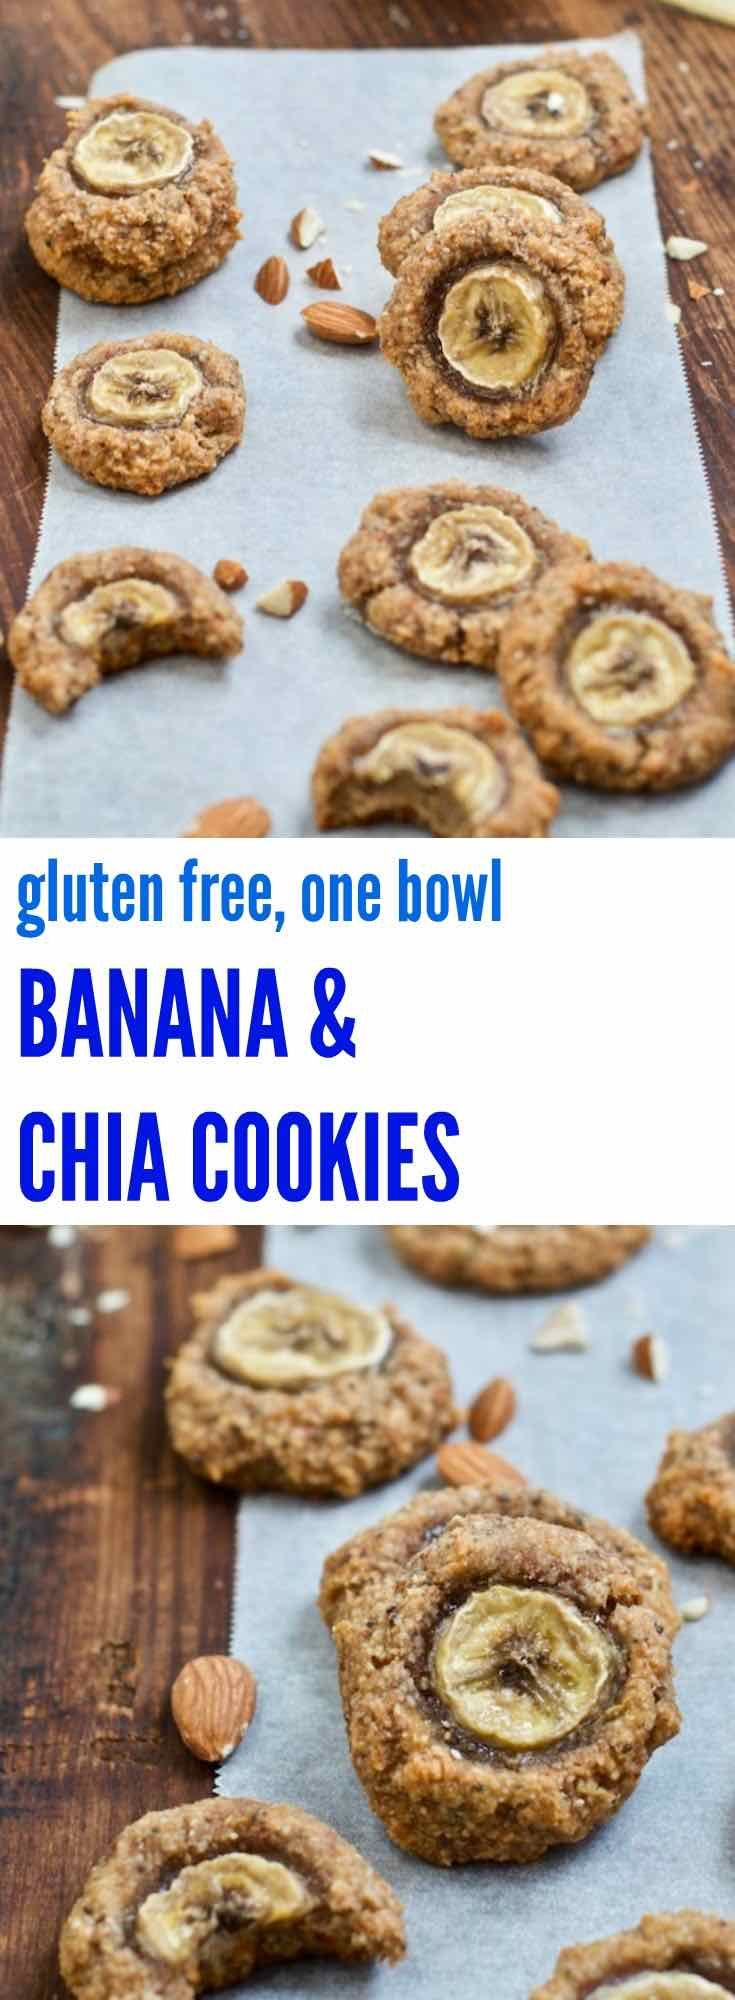 These one bowl banana & chia cookies are also naturally gluten free and couldn't be easier! With only 5 ingredients they make for a great snack or breakfast treat.